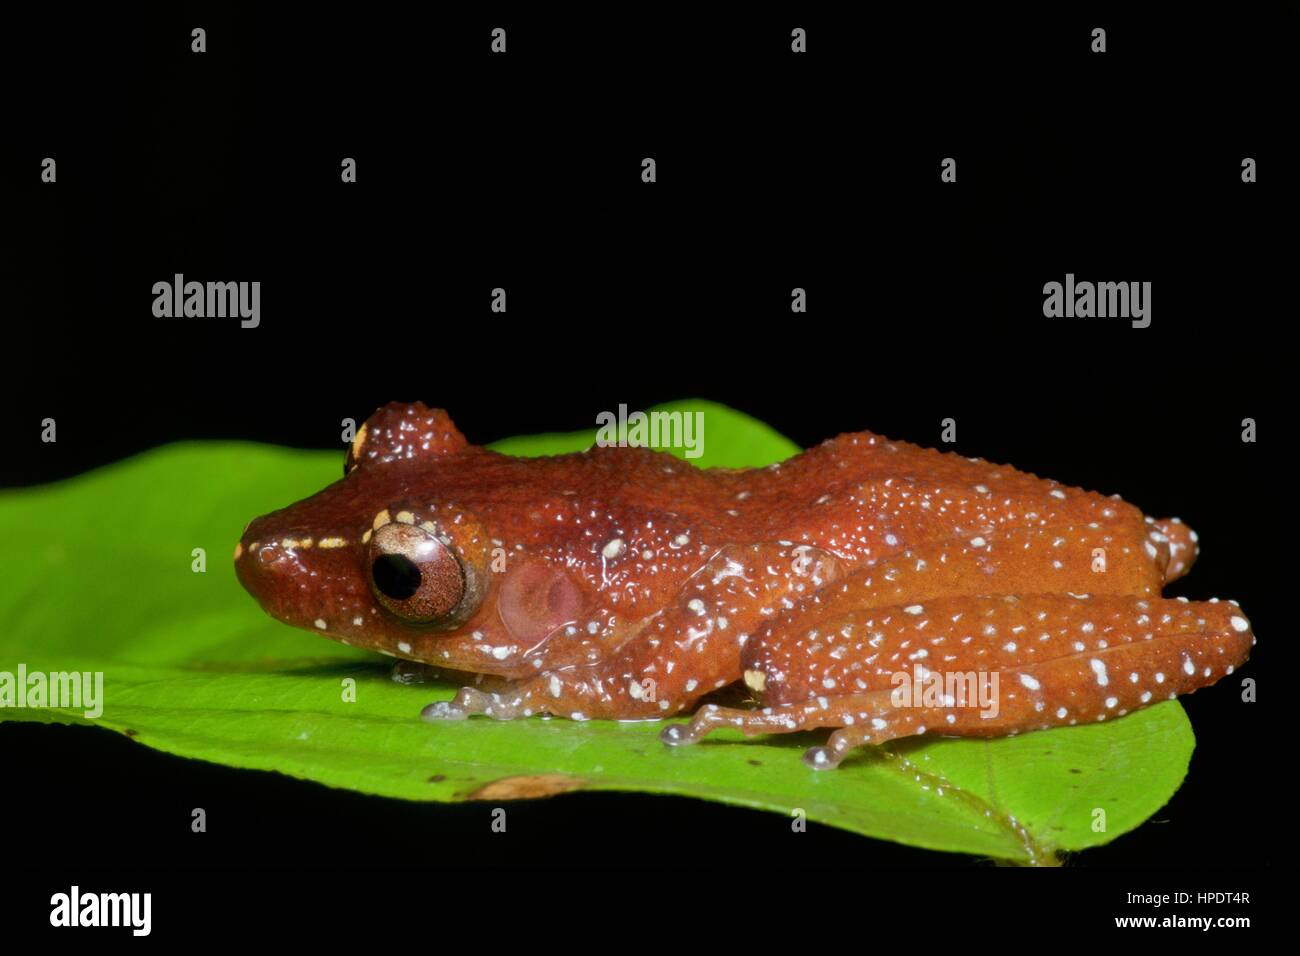 A Cinnamon Frog (Theloderma pictum) in the rainforest at night in Ulu Yam, Selangor, Malaysia - Stock Image